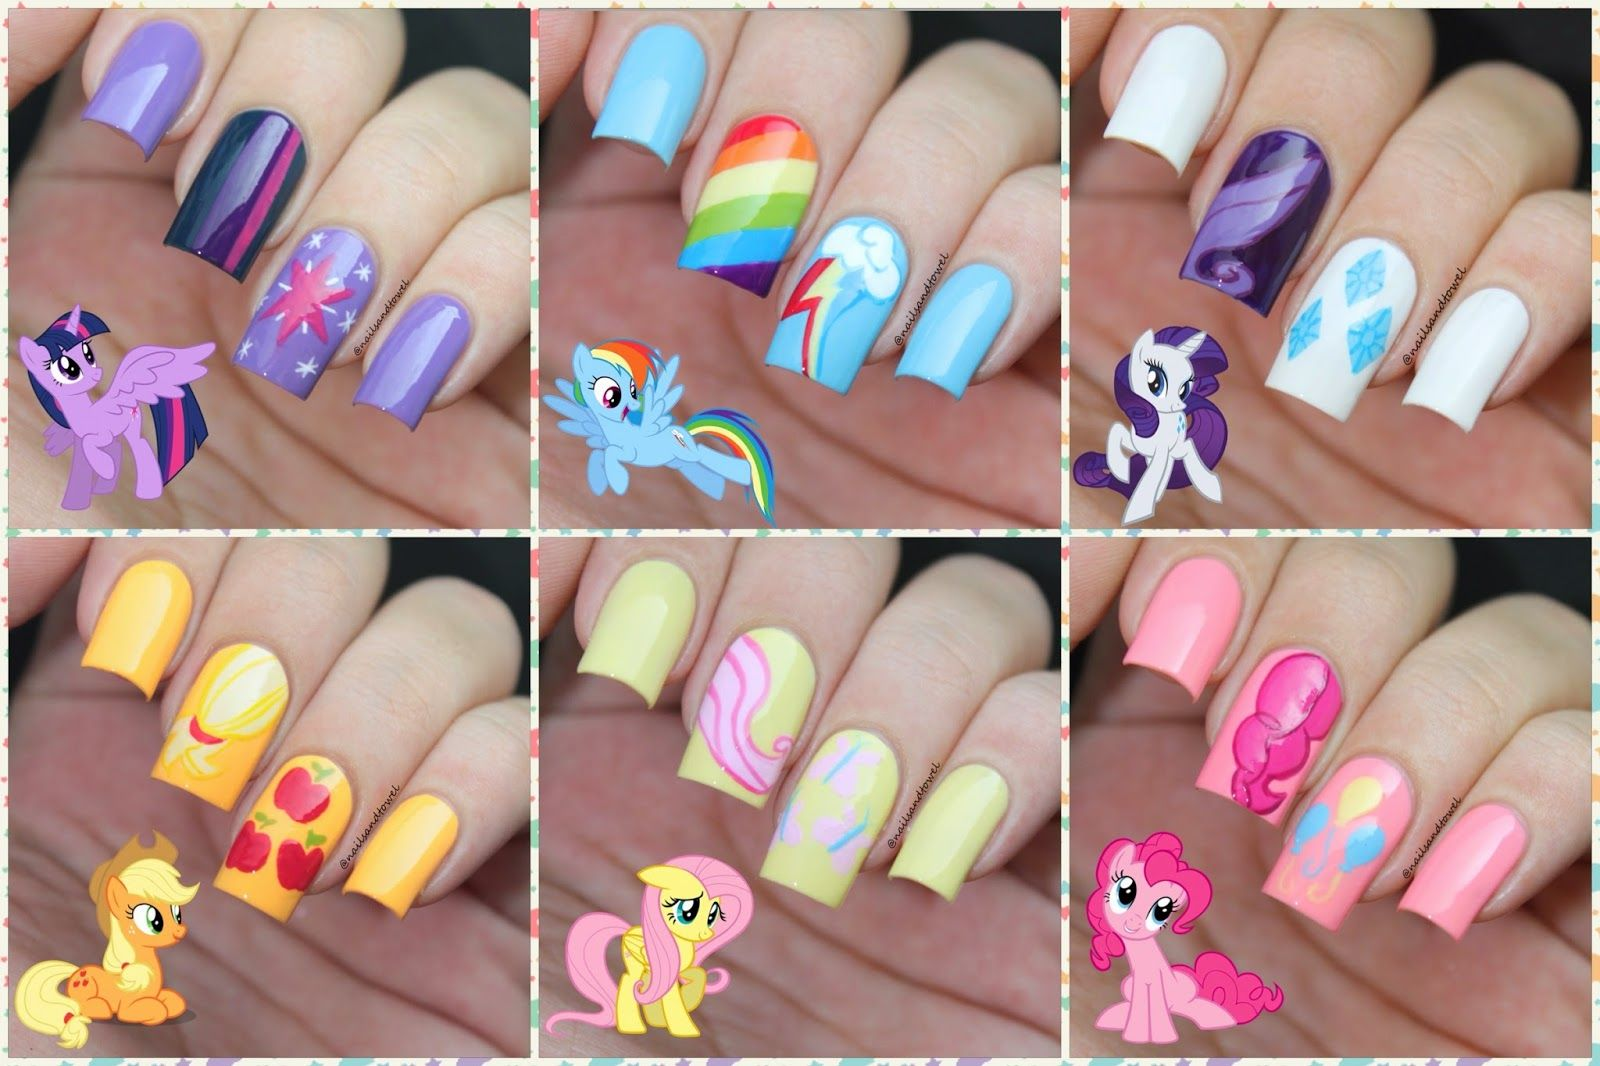 My Nail Art Journal Little Pony Nails Inspired Mon Pe Poney